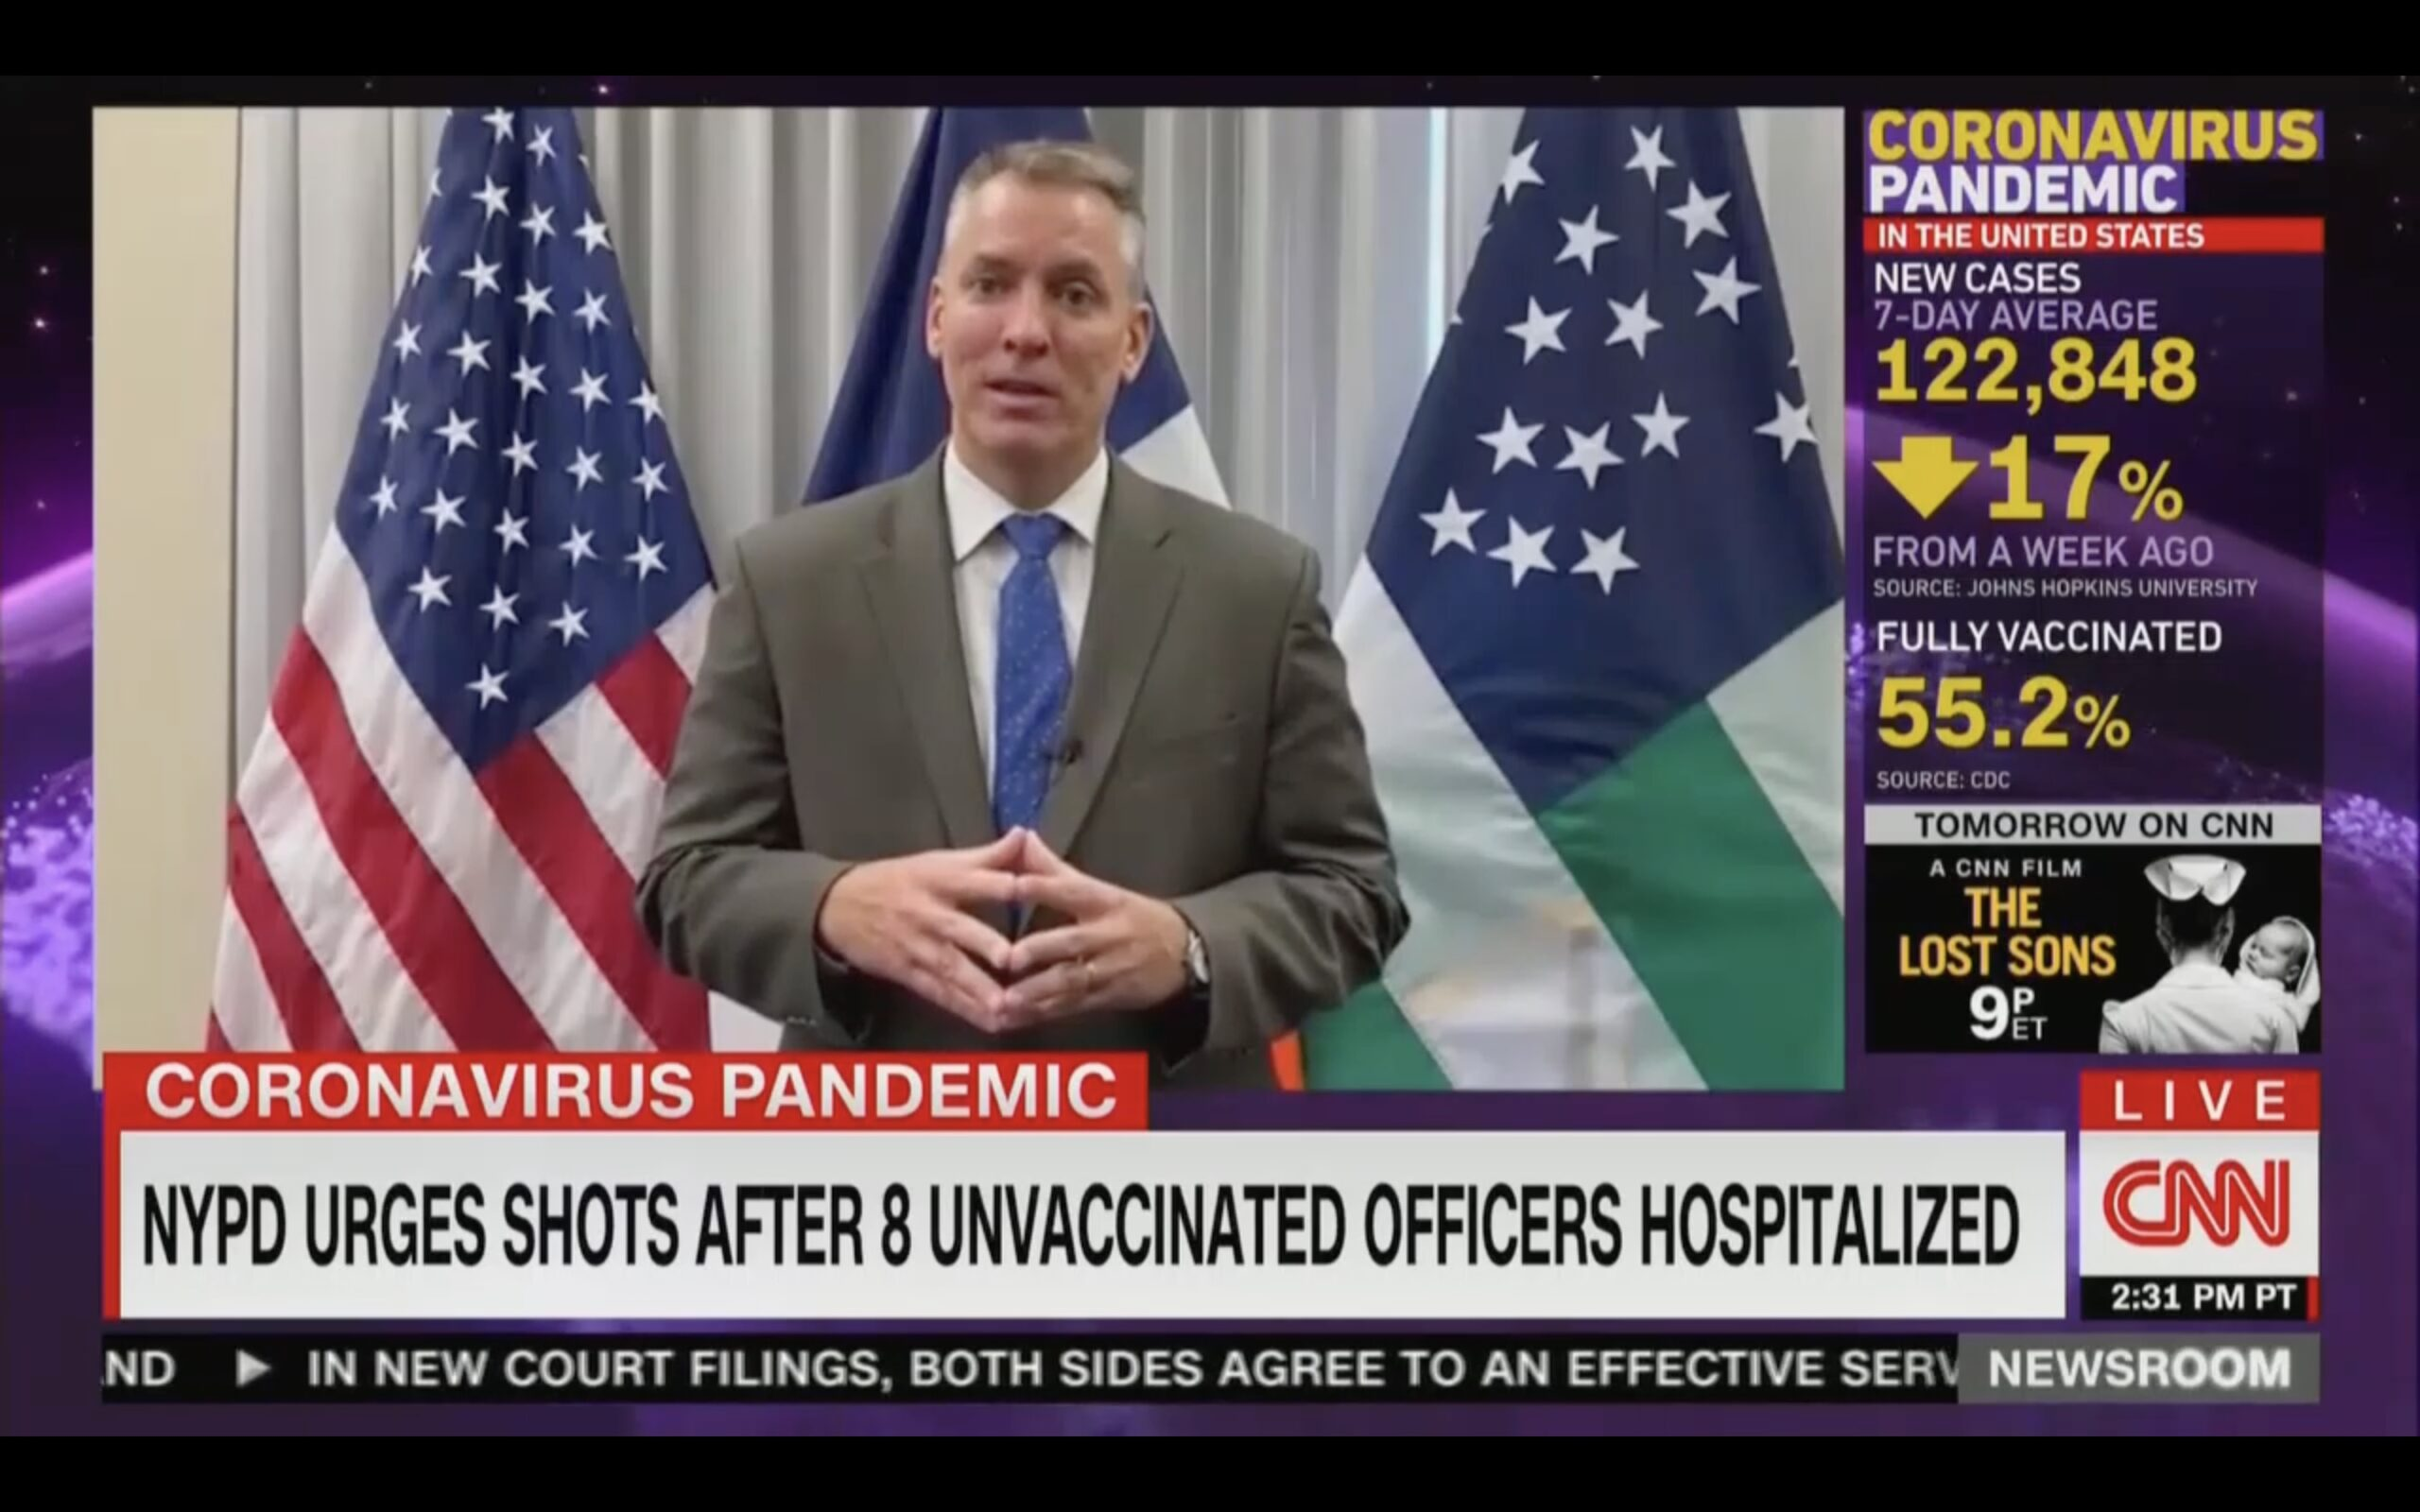 WATCH: NYPD Commissioner Issues 'Desperate Plea' Urging Vaccinations After 8 Unvaxxed Cops Hospitalized - Mediaite